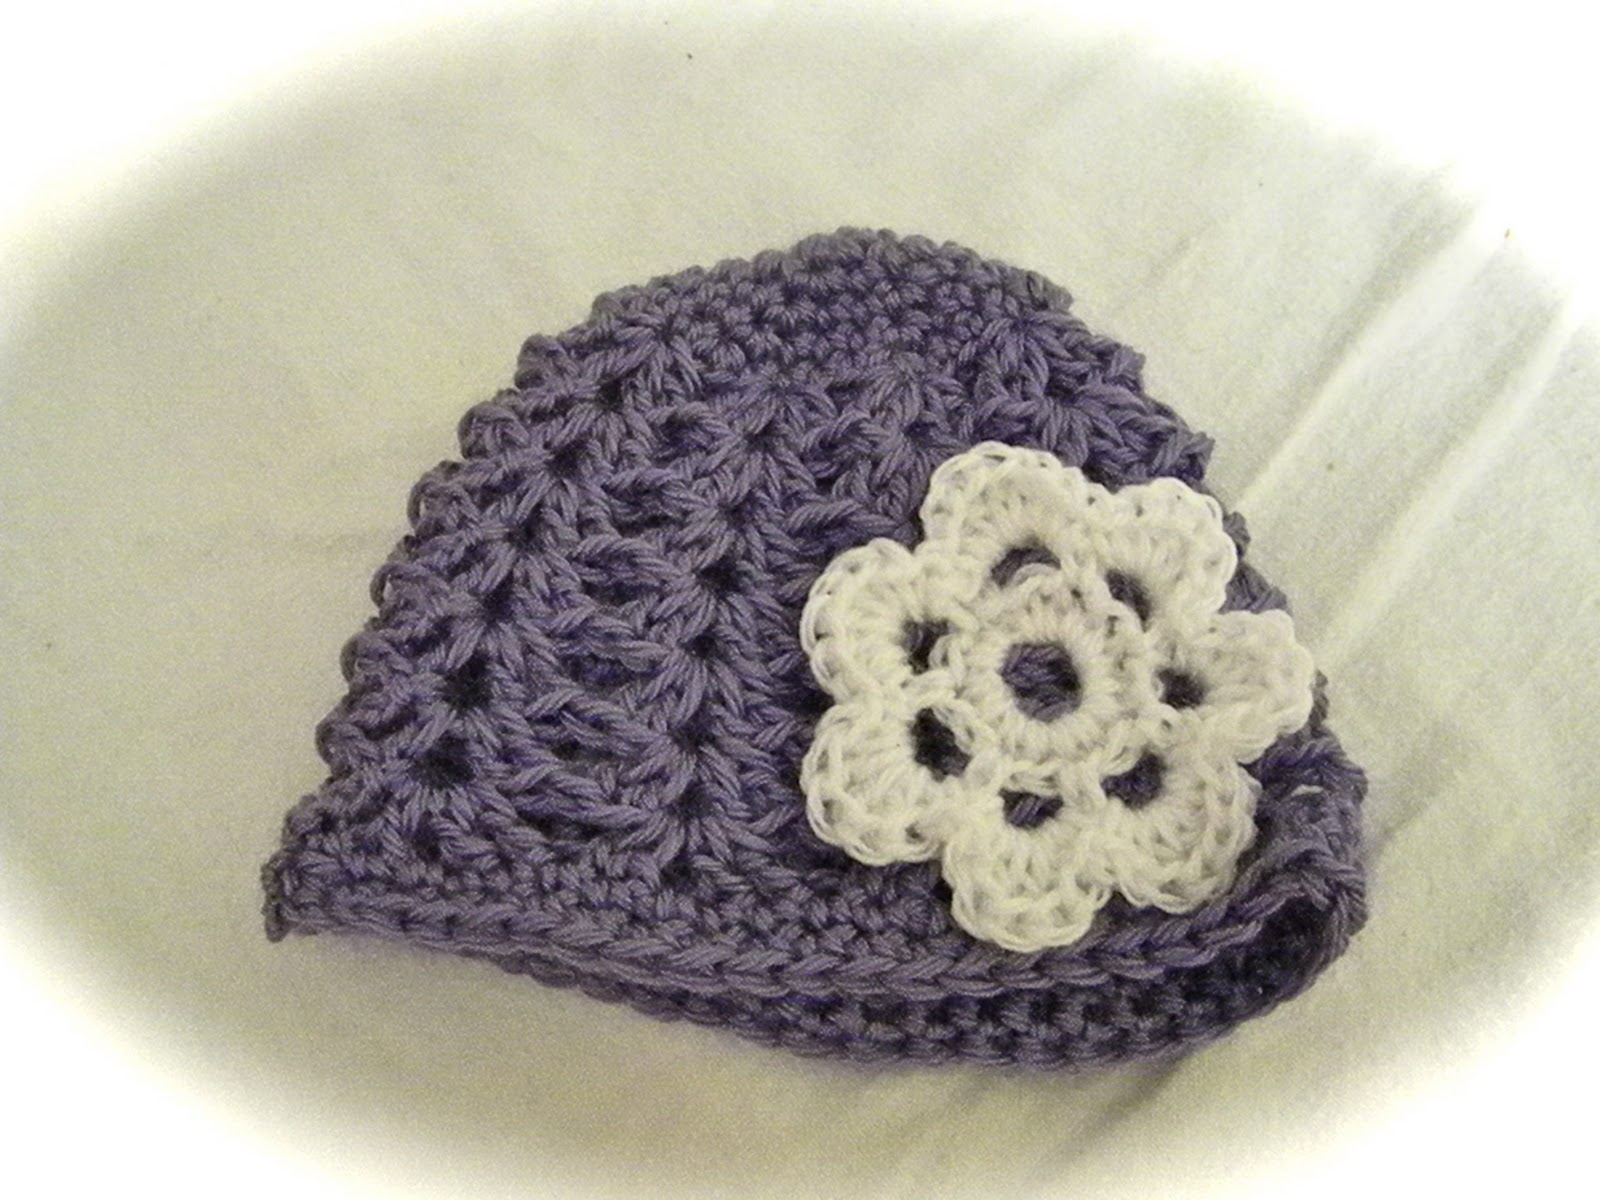 Crochet Shell Beanie Hat Pattern : Knotty Knotty Crochet: Shell Stitch Beanie